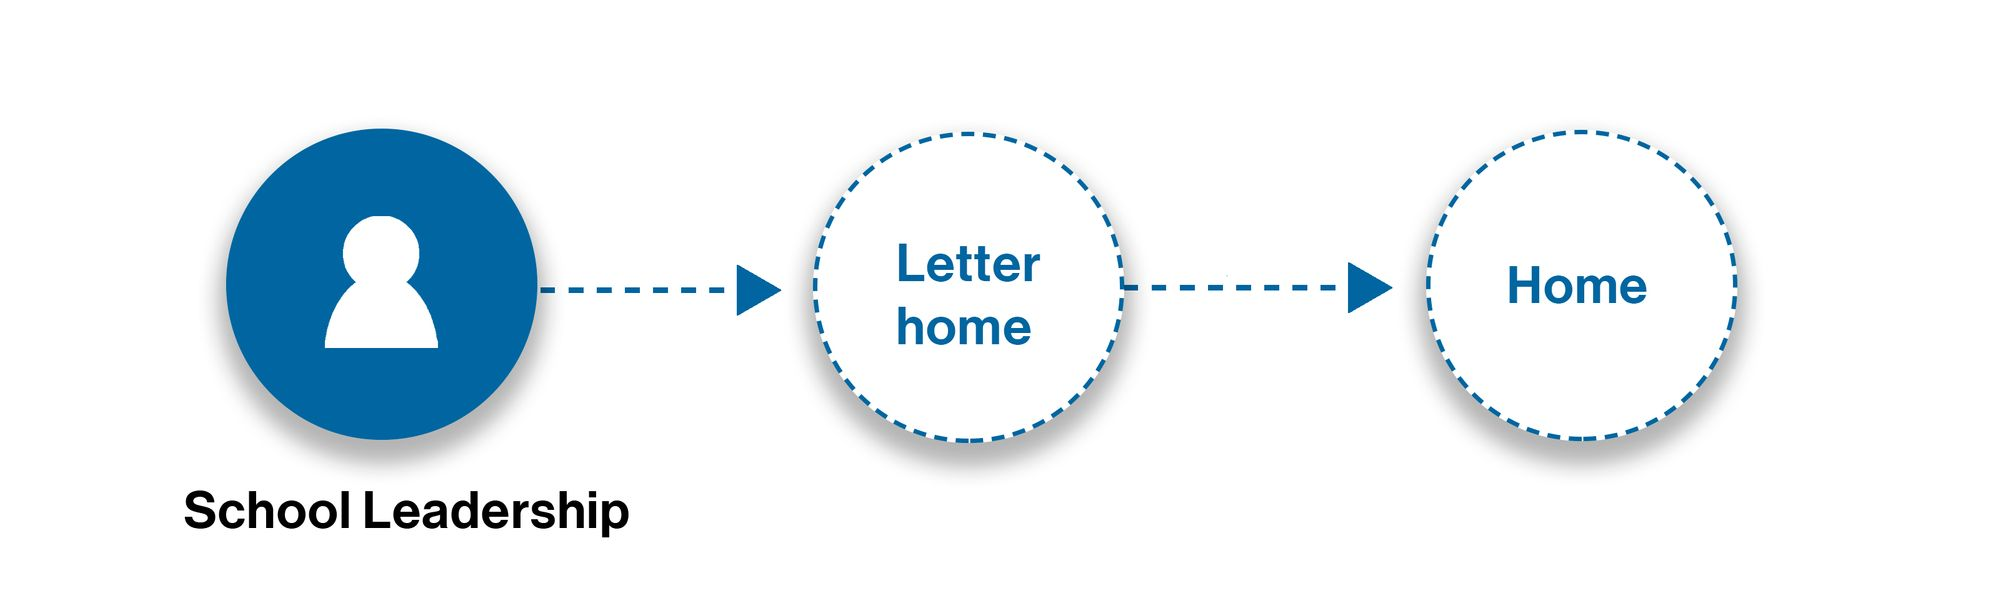 School leadership points to letter home points to home